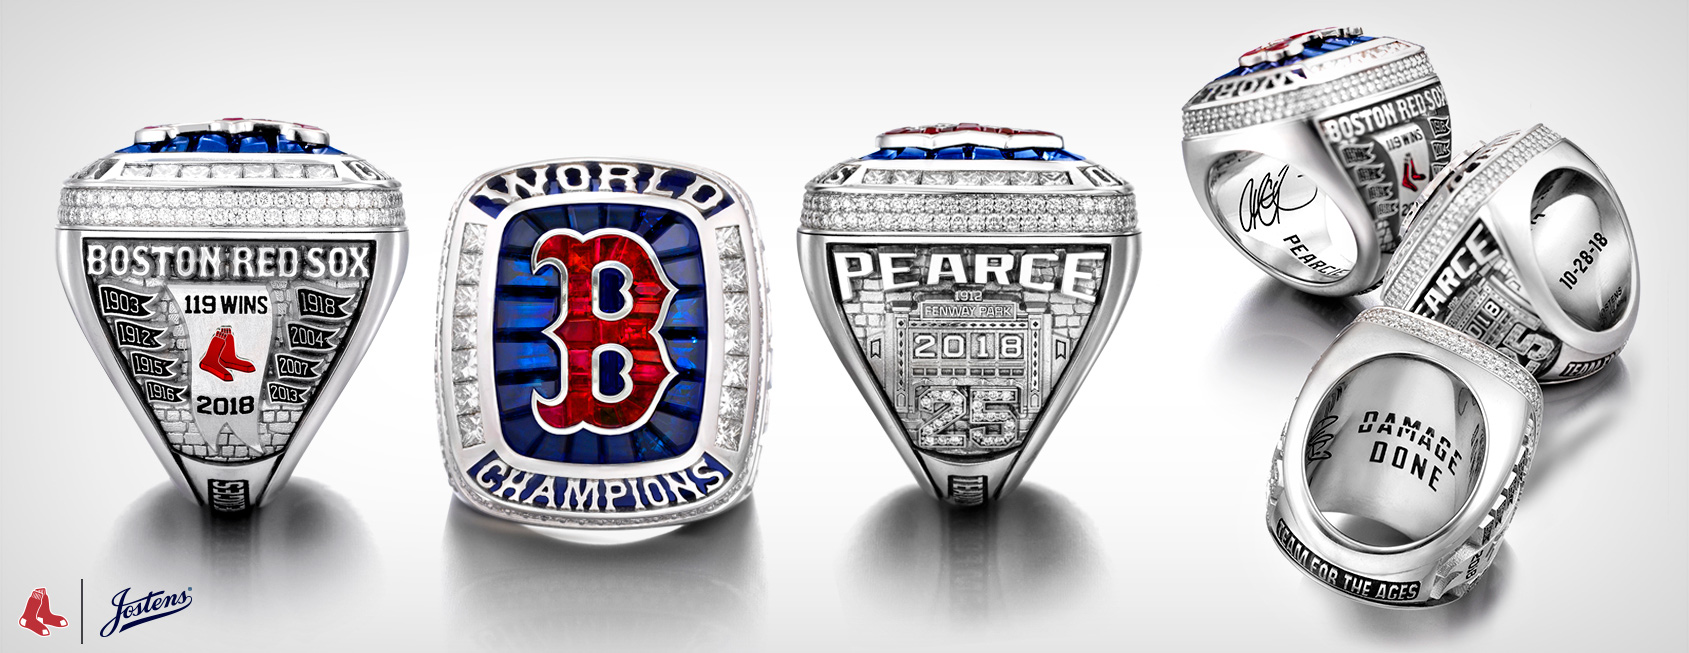 8594efec598fa6 Red-Sox-2018-World-Series-Championship-Ring-Photo-All-Angles PR ·  PressReleaseInfographic v4 PR